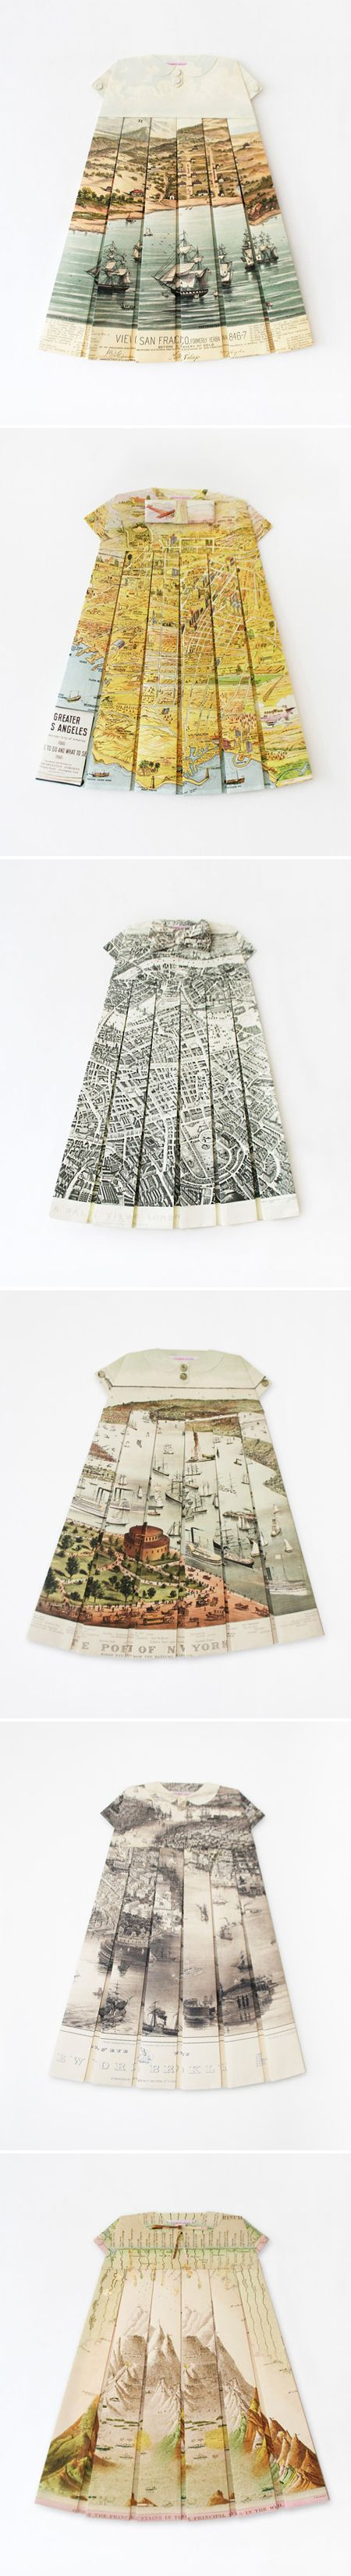 ELISABETH LECOURT - vintage maps folded into dresses